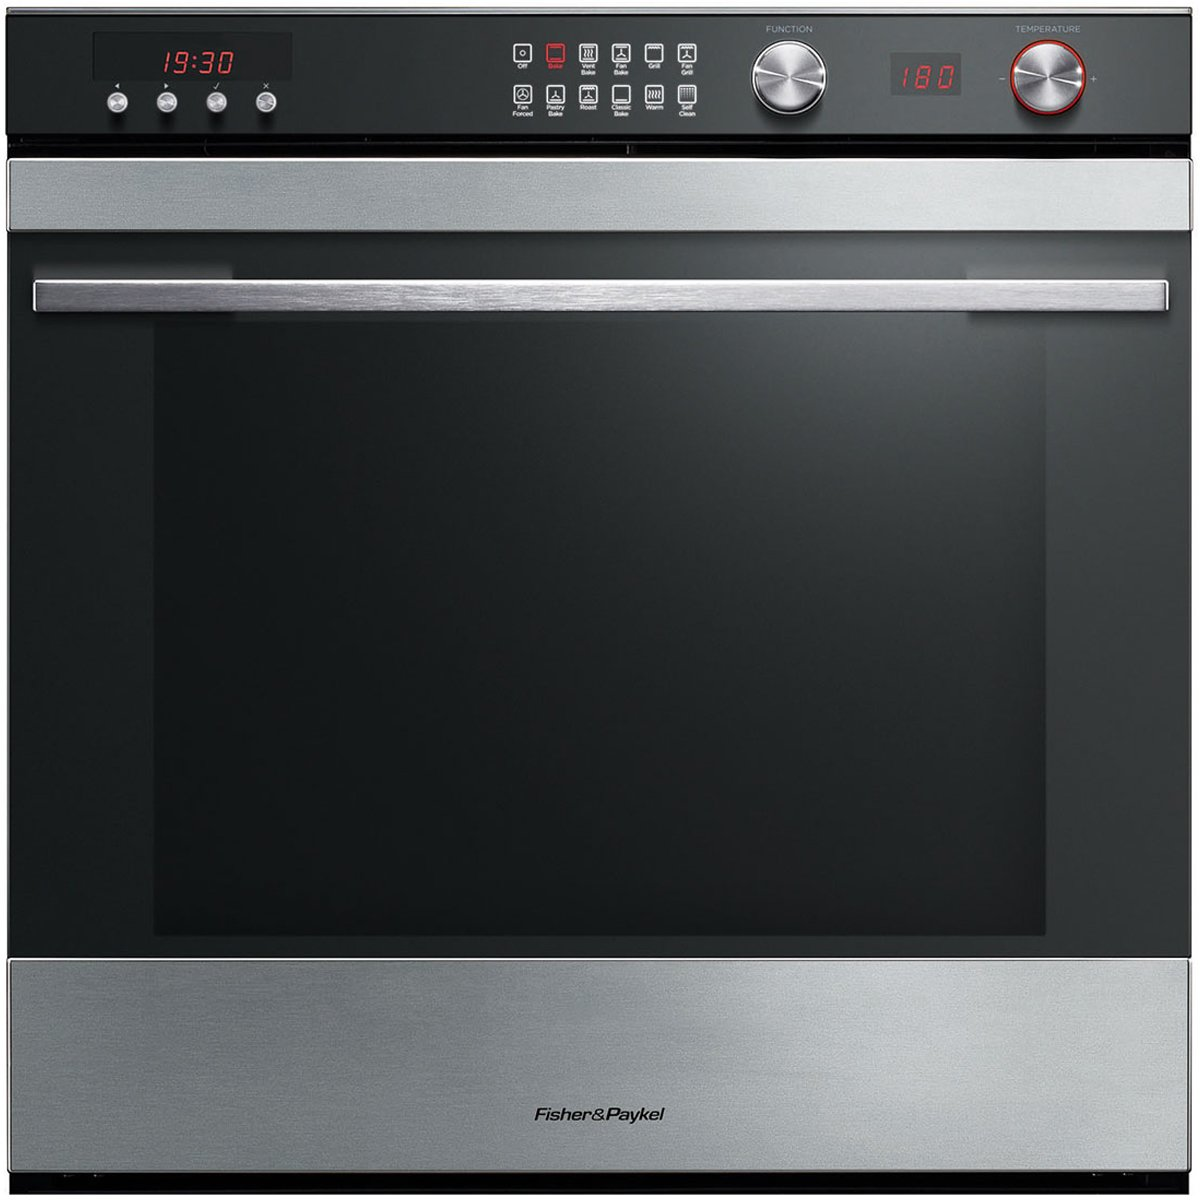 Fisher Amp Paykel Ob60sl11dcpx1 60cm Pyrolytic Electric